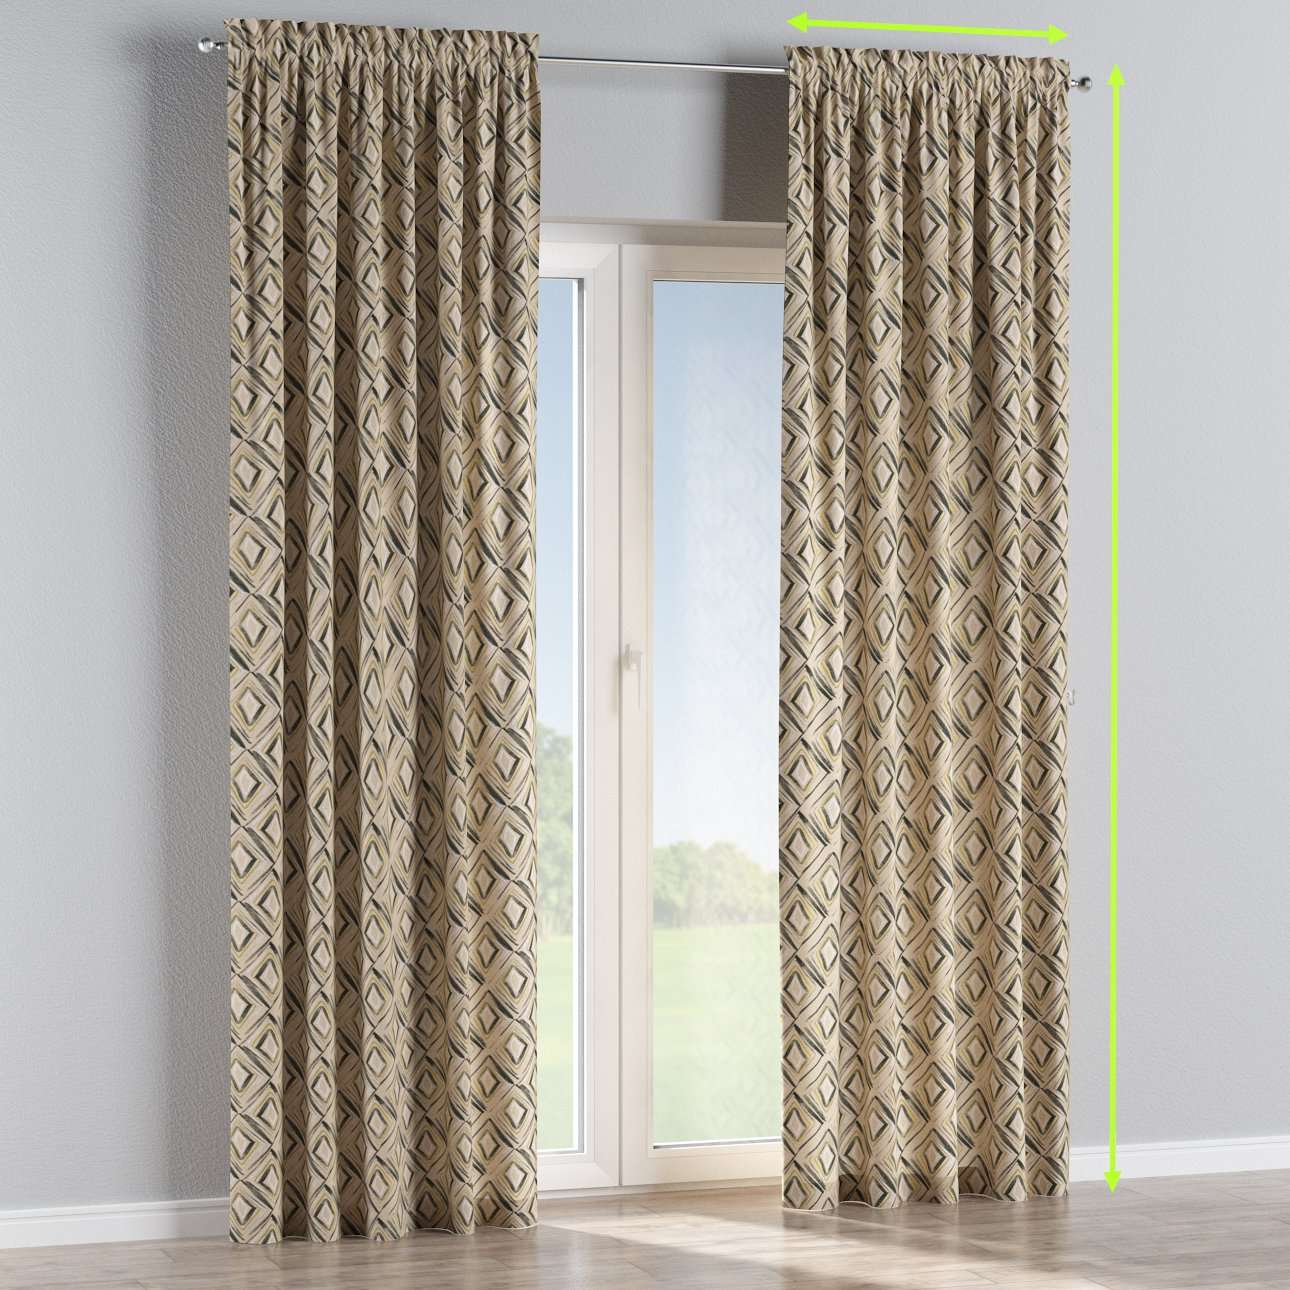 Slot and frill lined curtains in collection Londres, fabric: 140-46